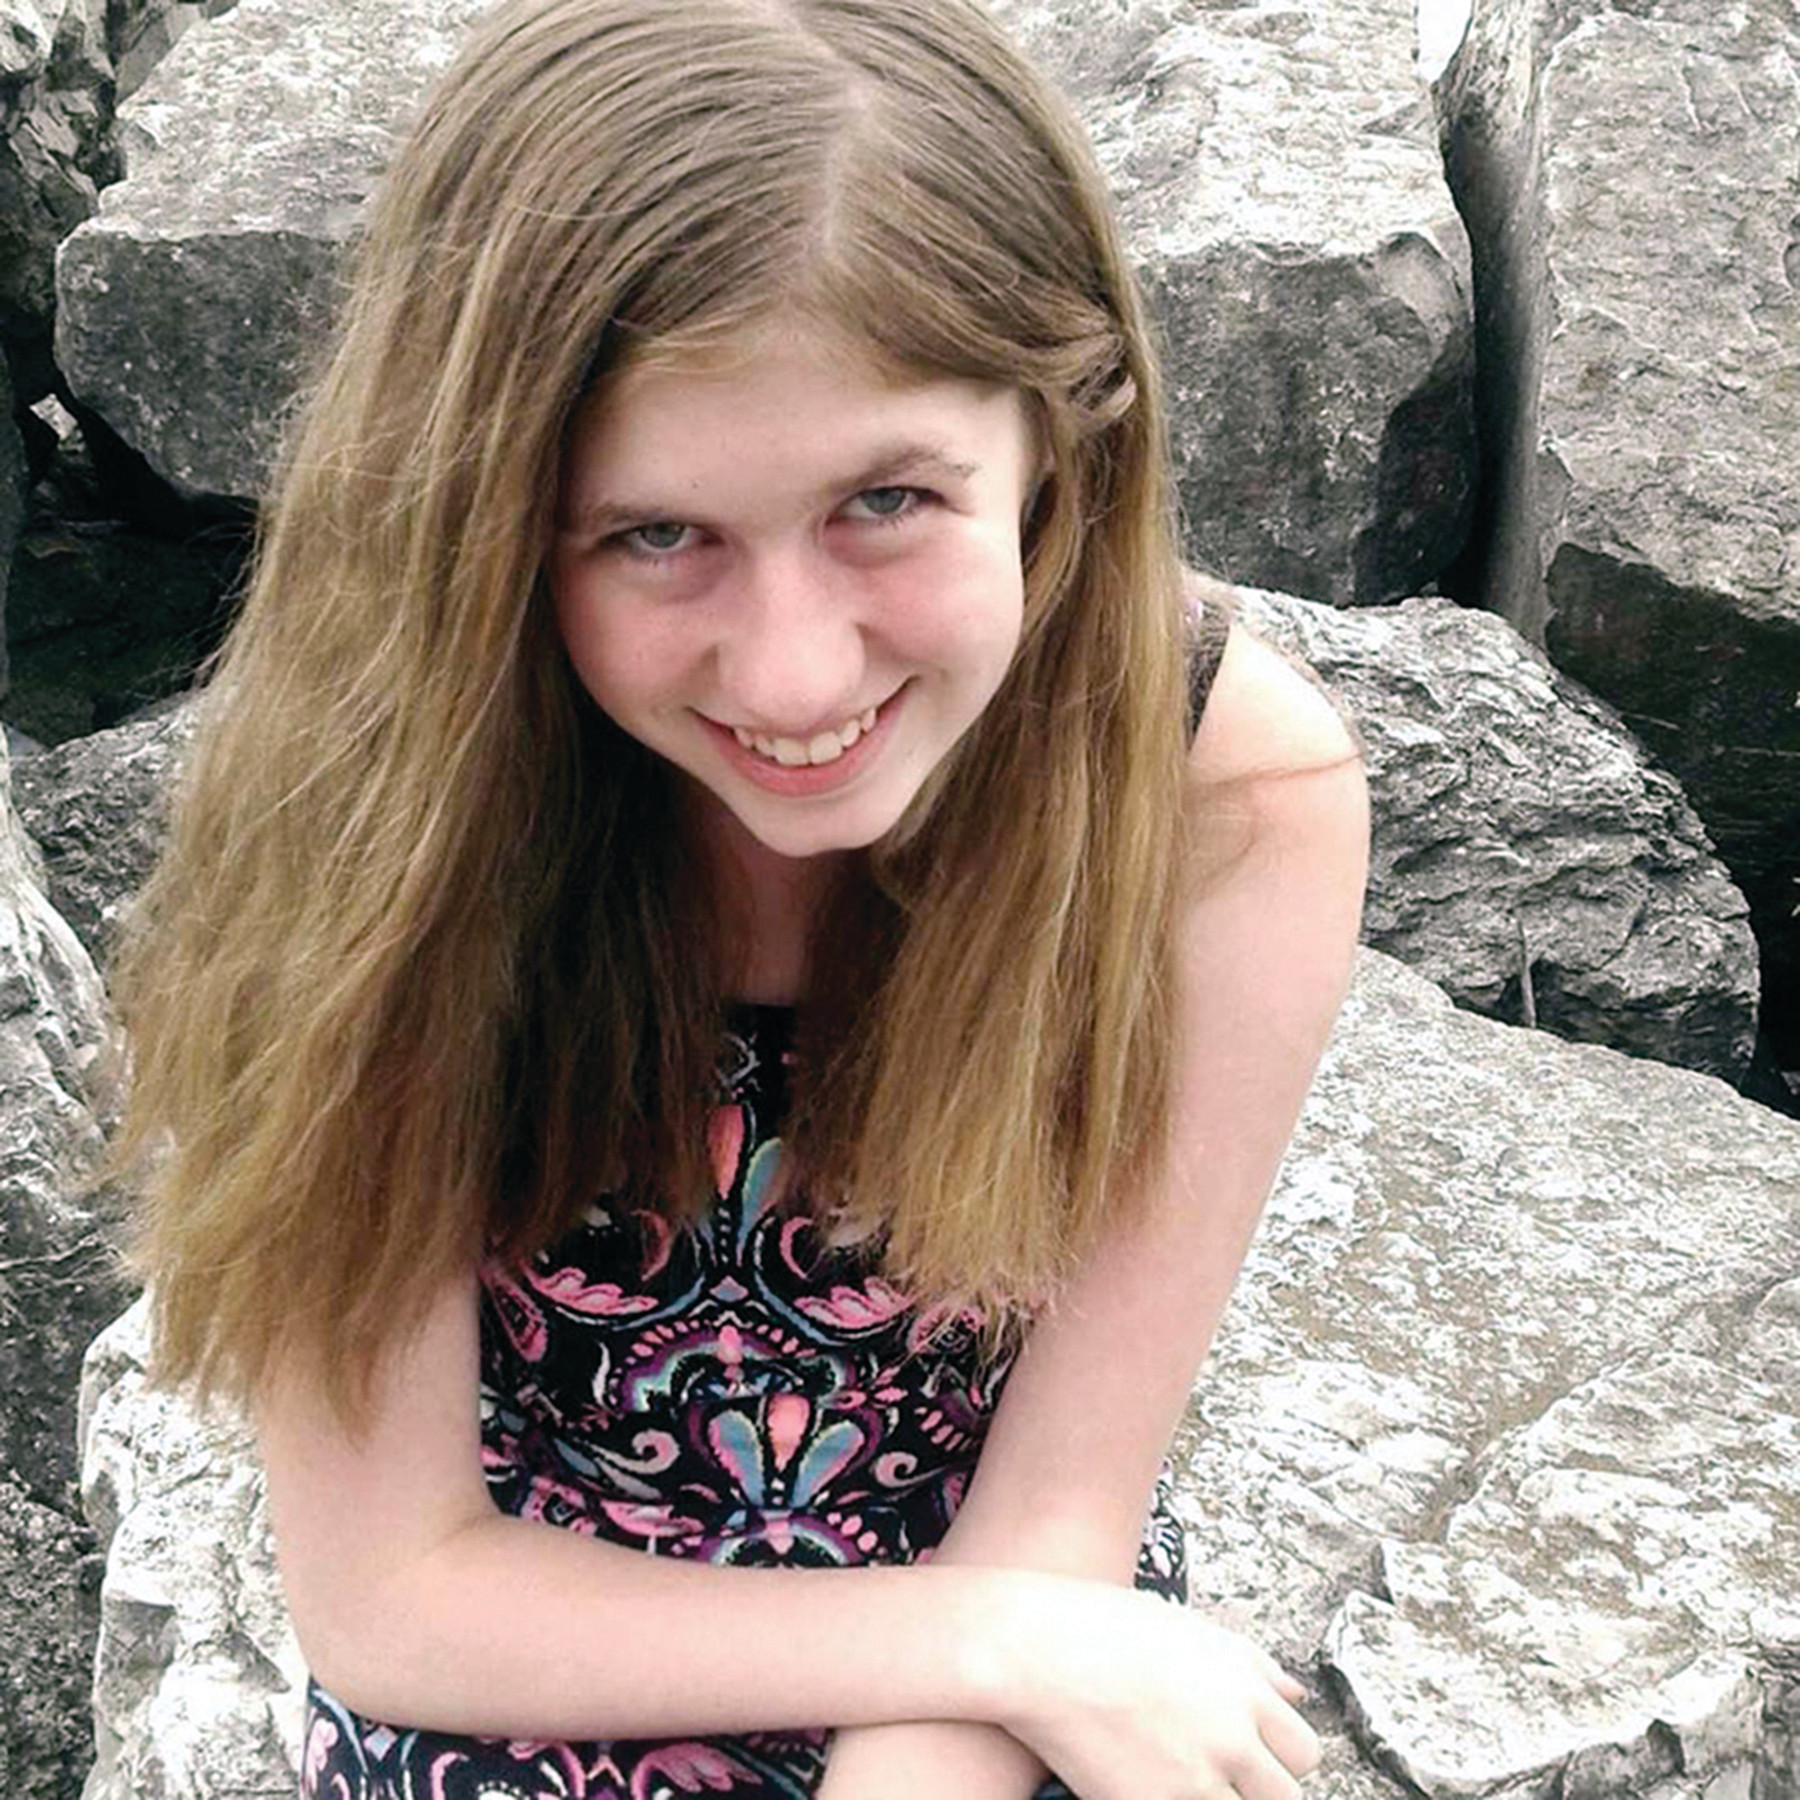 This undated file photo provided by Barron County, Wis., Sheriff's Department, shows Jayme Closs, who was discovered missing Oct. 15, 2018, after her parents were found fatally shot at their home in Barron, Wis. The Barron County Sheriff's Department said on its Facebook page Thursday, Jan. 10, 2019, that Closs who went missing in October after her parents were killed has now been located and that a suspect was taken into custody.